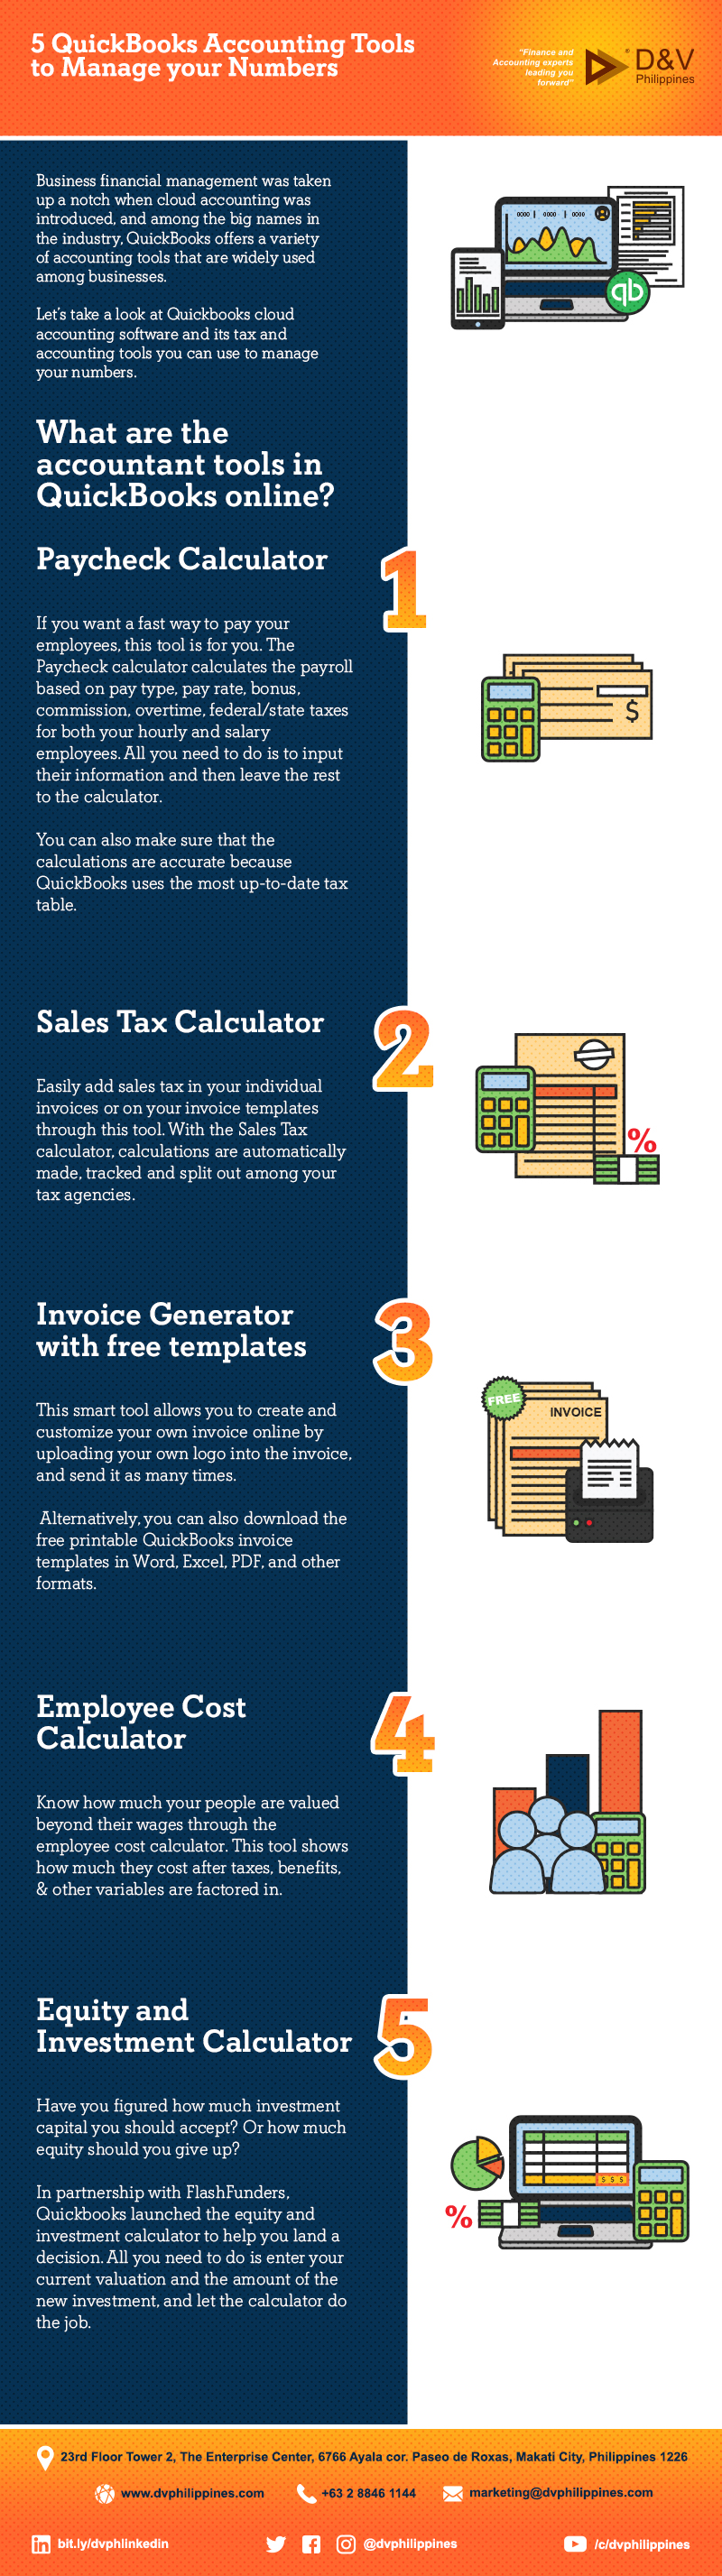 Infog_W_C_5 Quickbooks Accounting Tools to Manage your Numbers